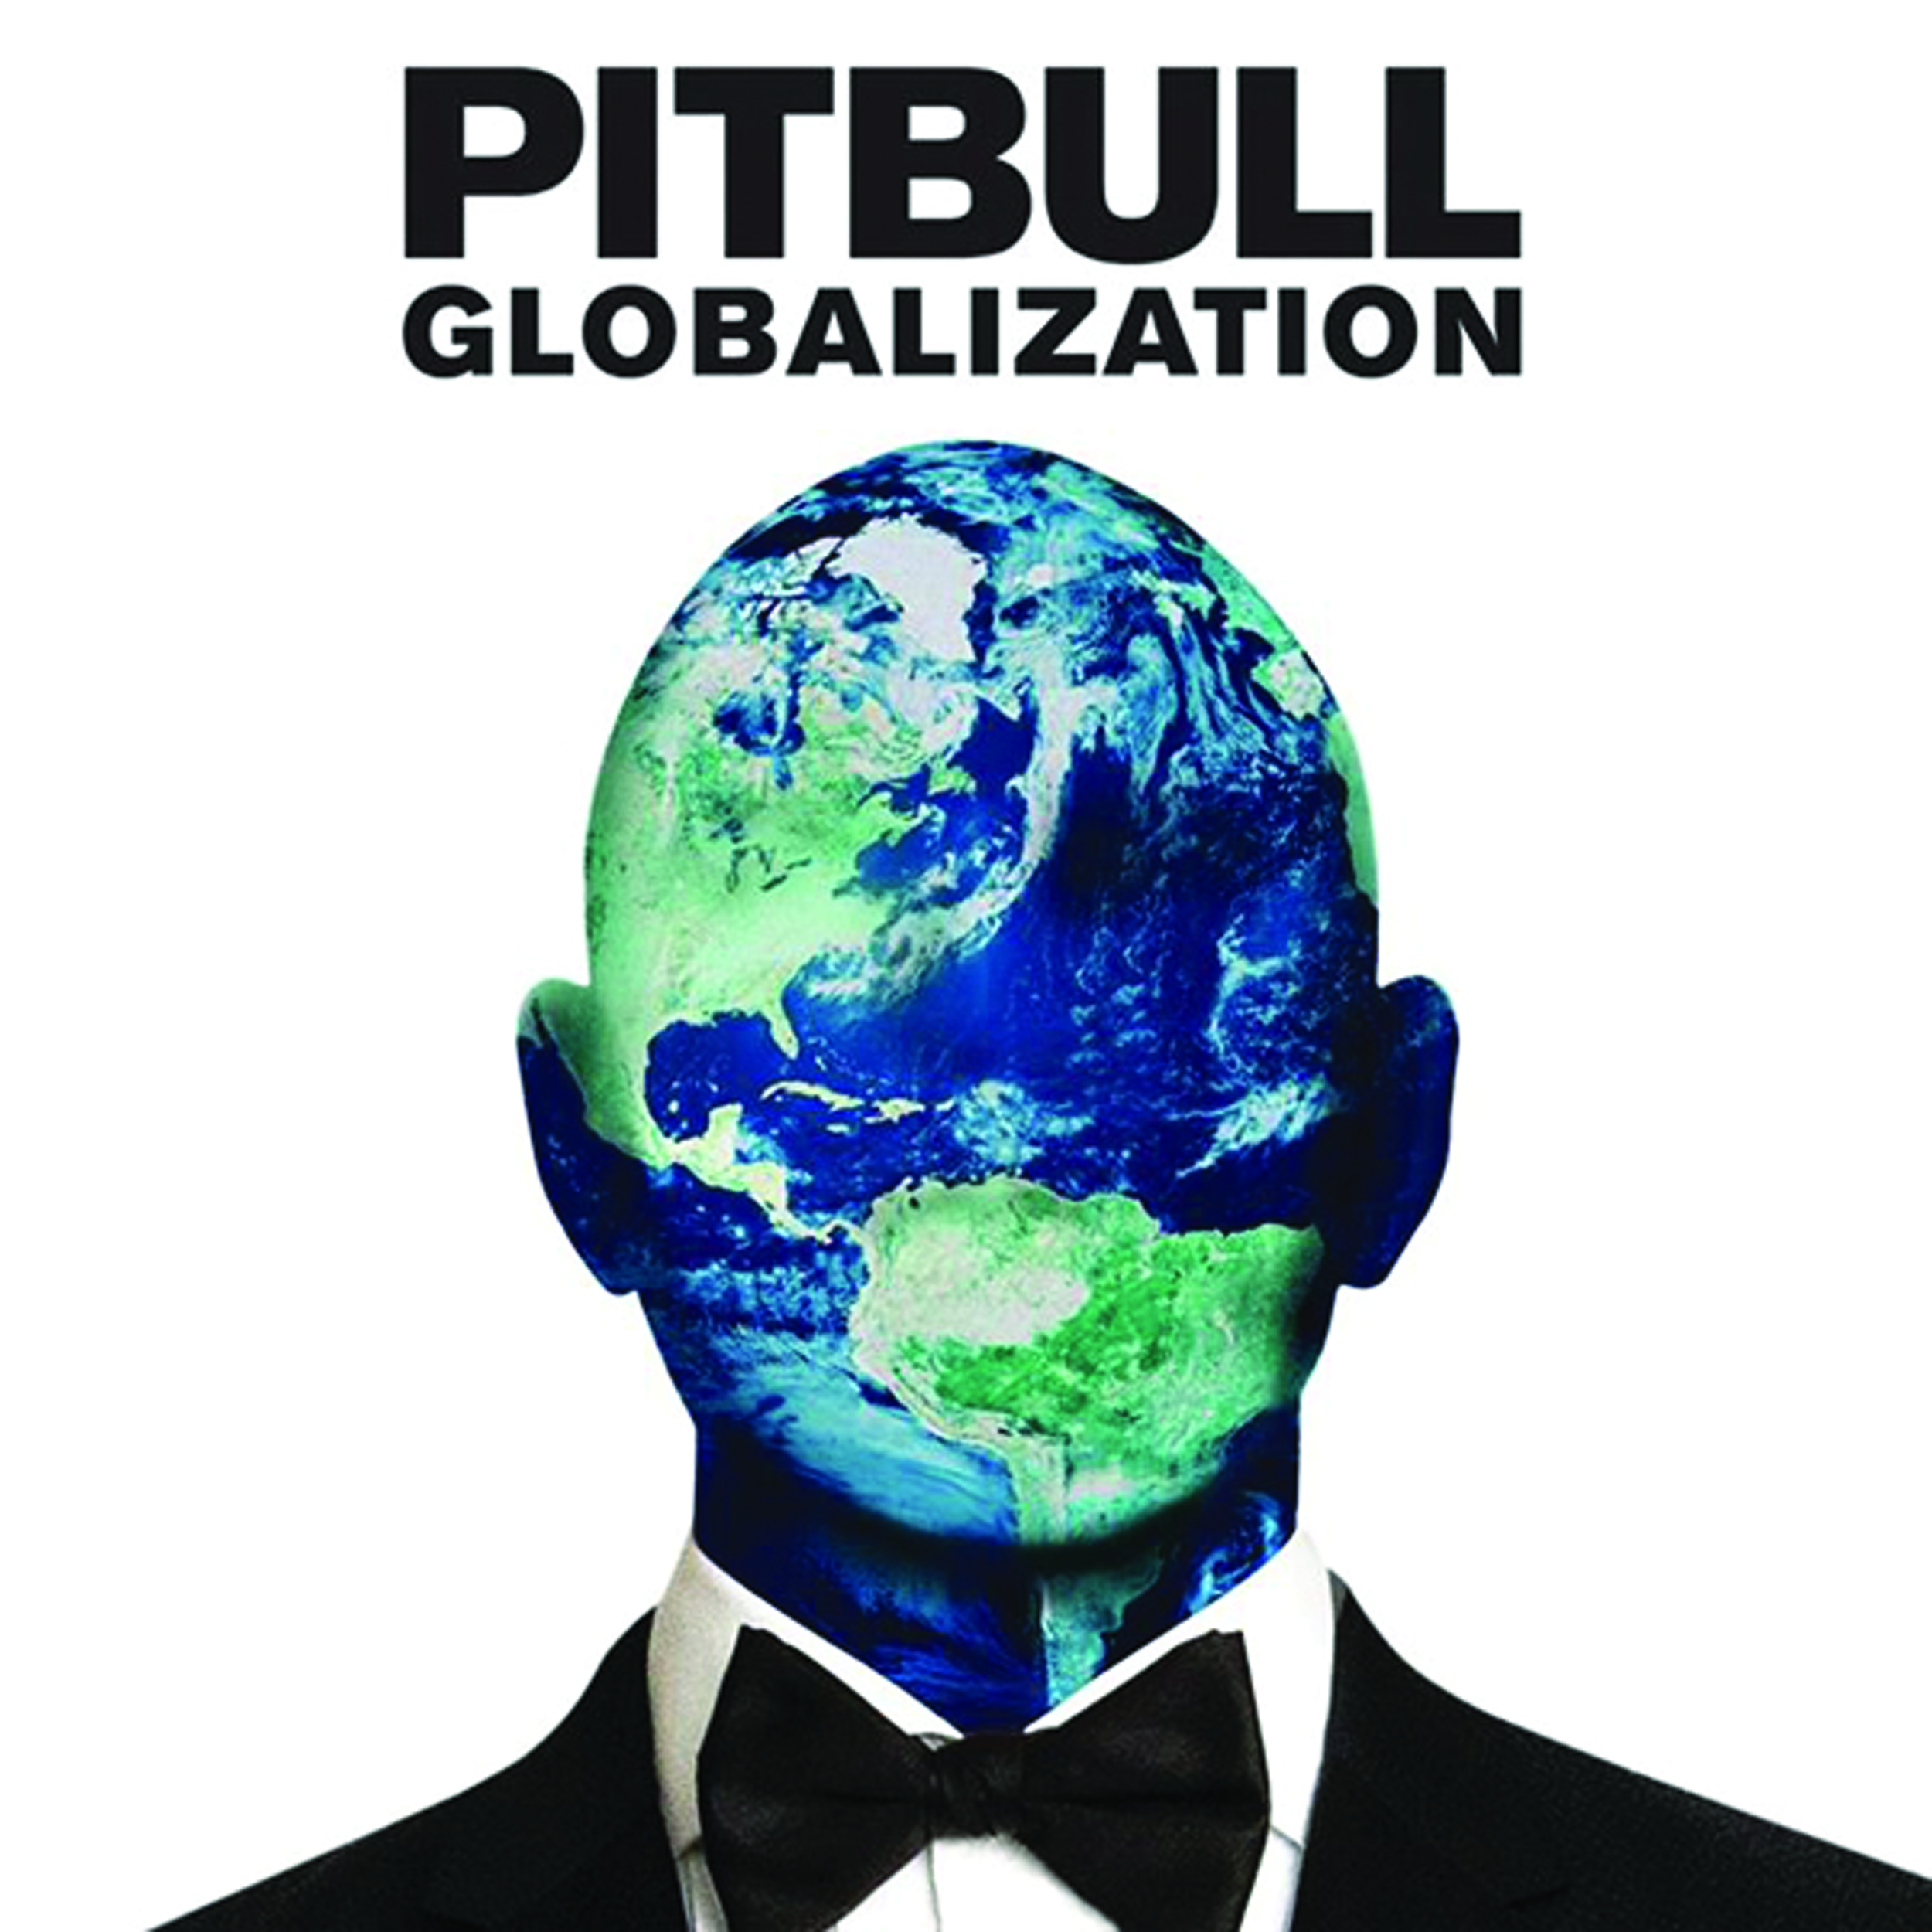 pitbullglobalization.jpg